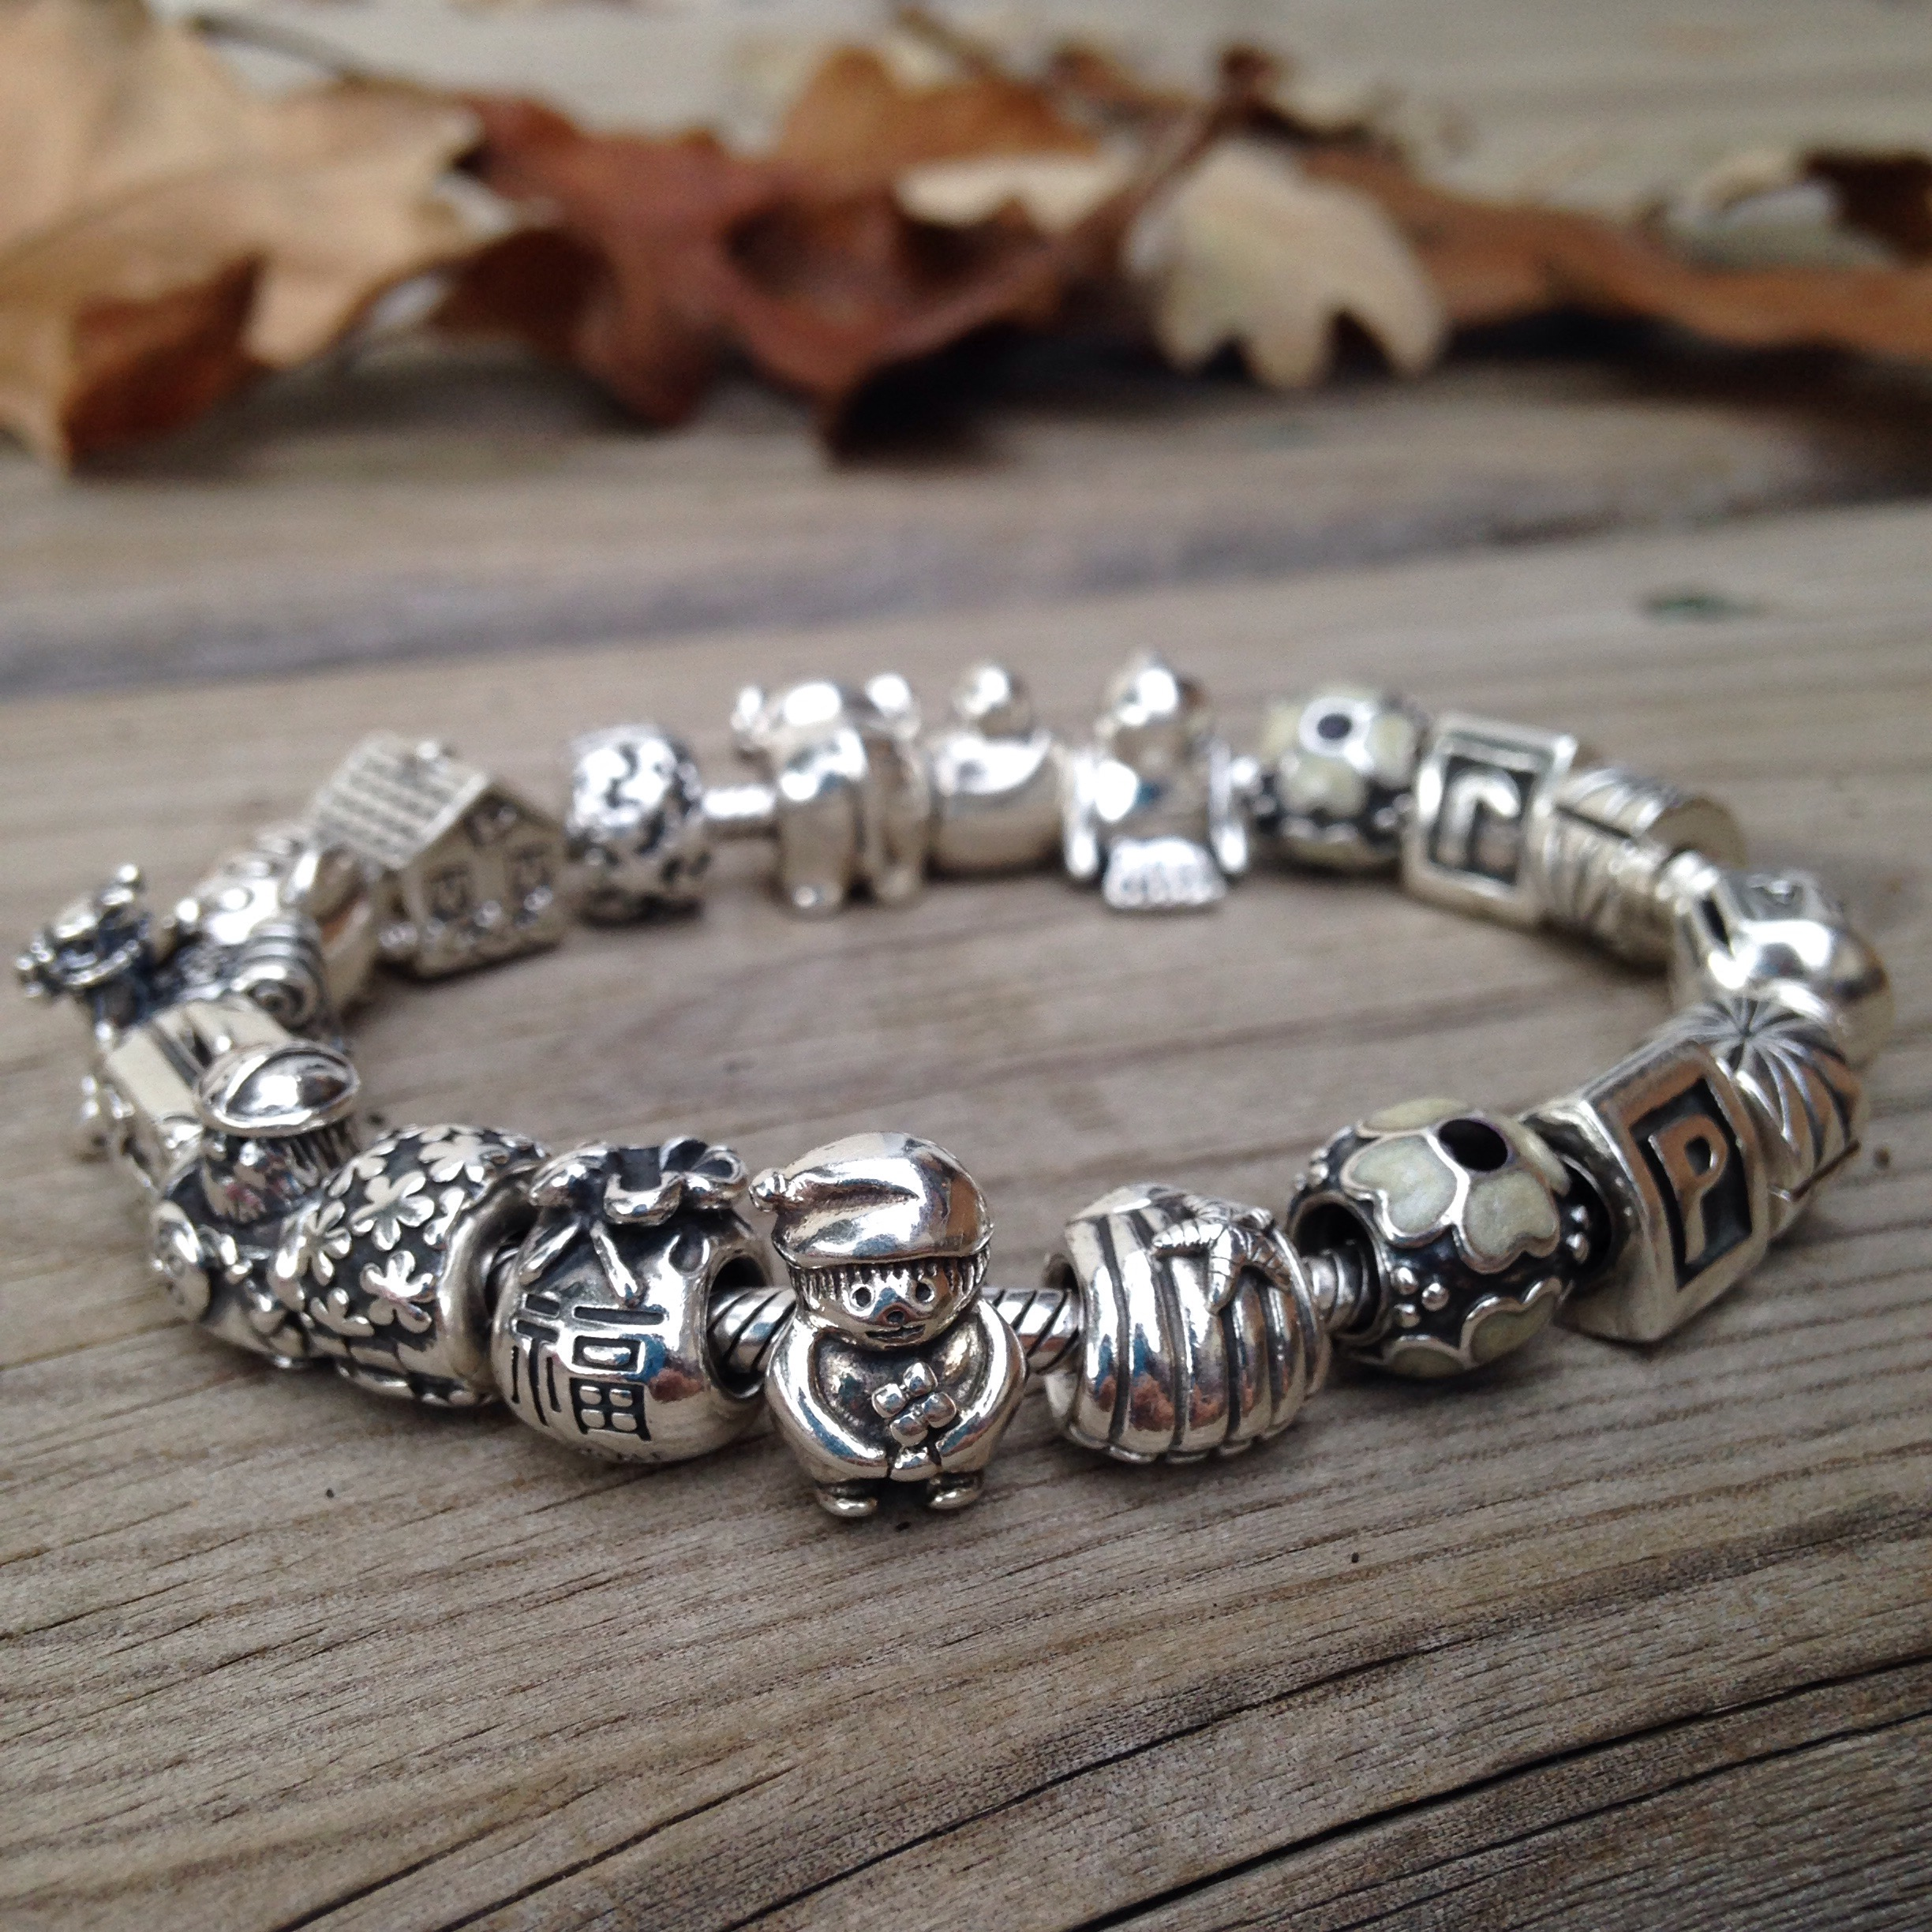 of set cool design ideas pretty charm bracelet jewelry silver pandora letters pinterest for and super inside handstamped bangle inset bangles with charms bracelets heart mom argentium